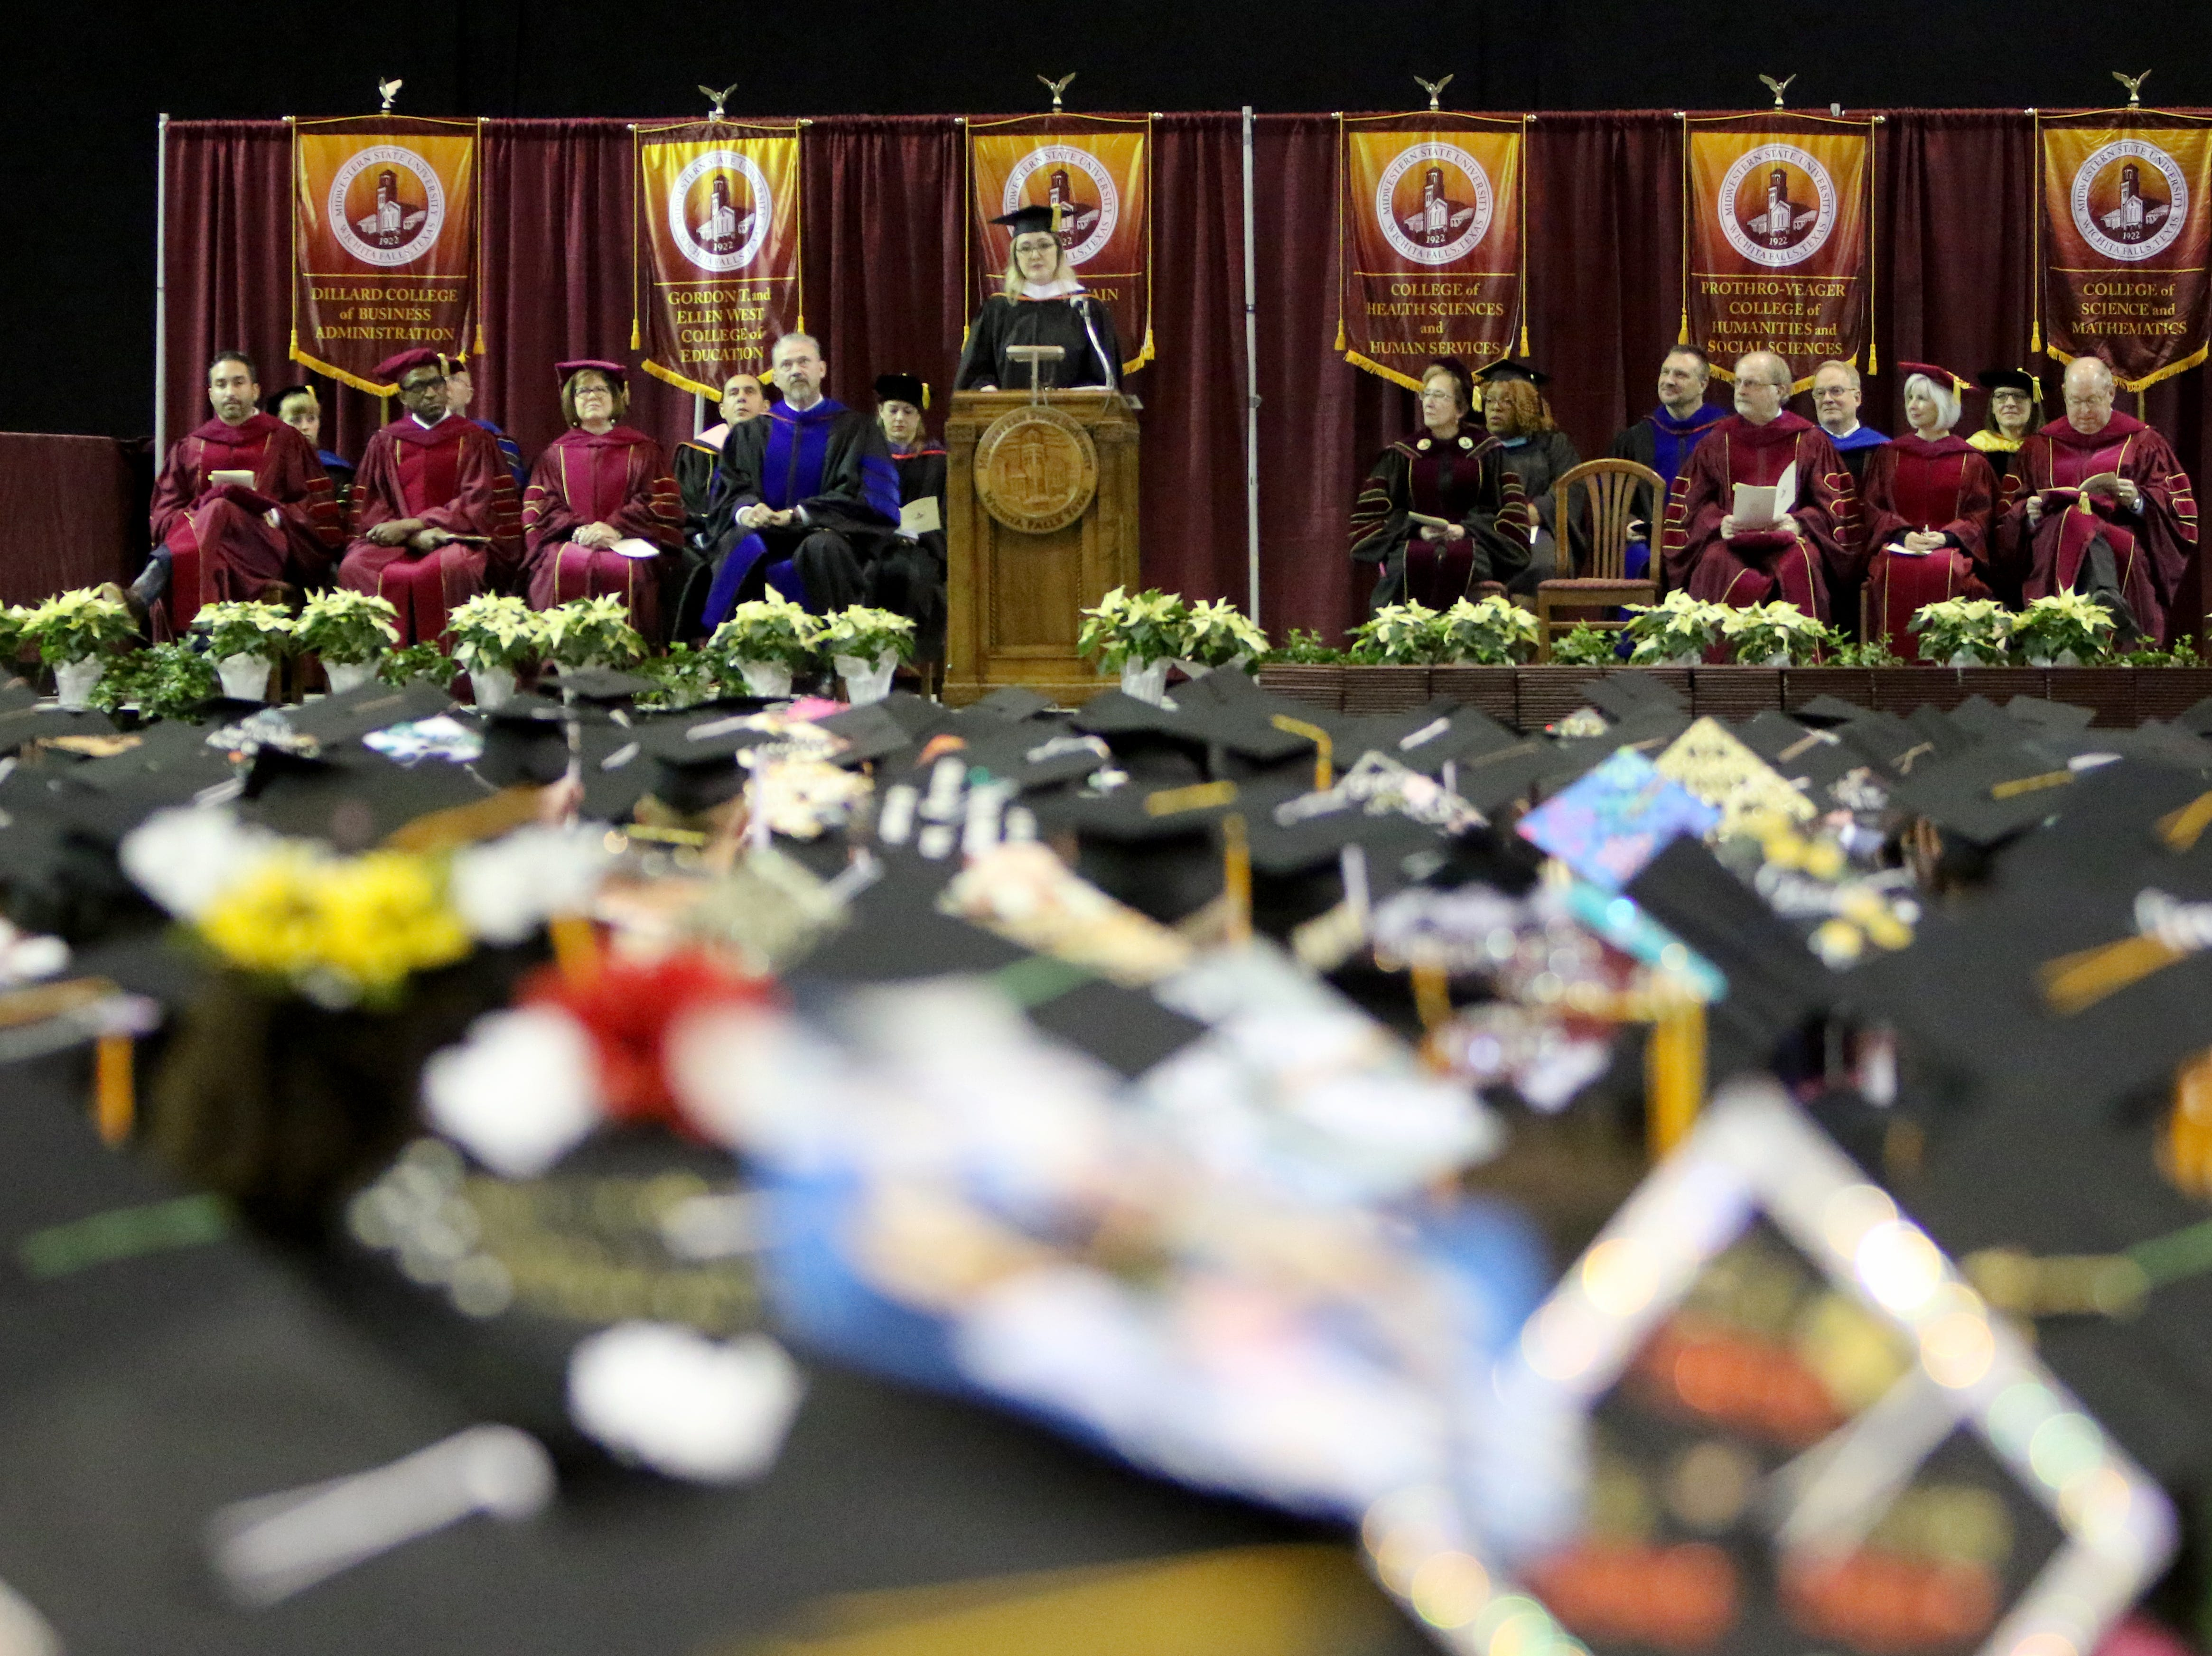 Midwestern State University alumna Valarie McCubbins gives the commencement address at the fall commencement ceremony Saturday, Dec. 15, 2018, in Kay Yeager Coliseum at the MPEC.